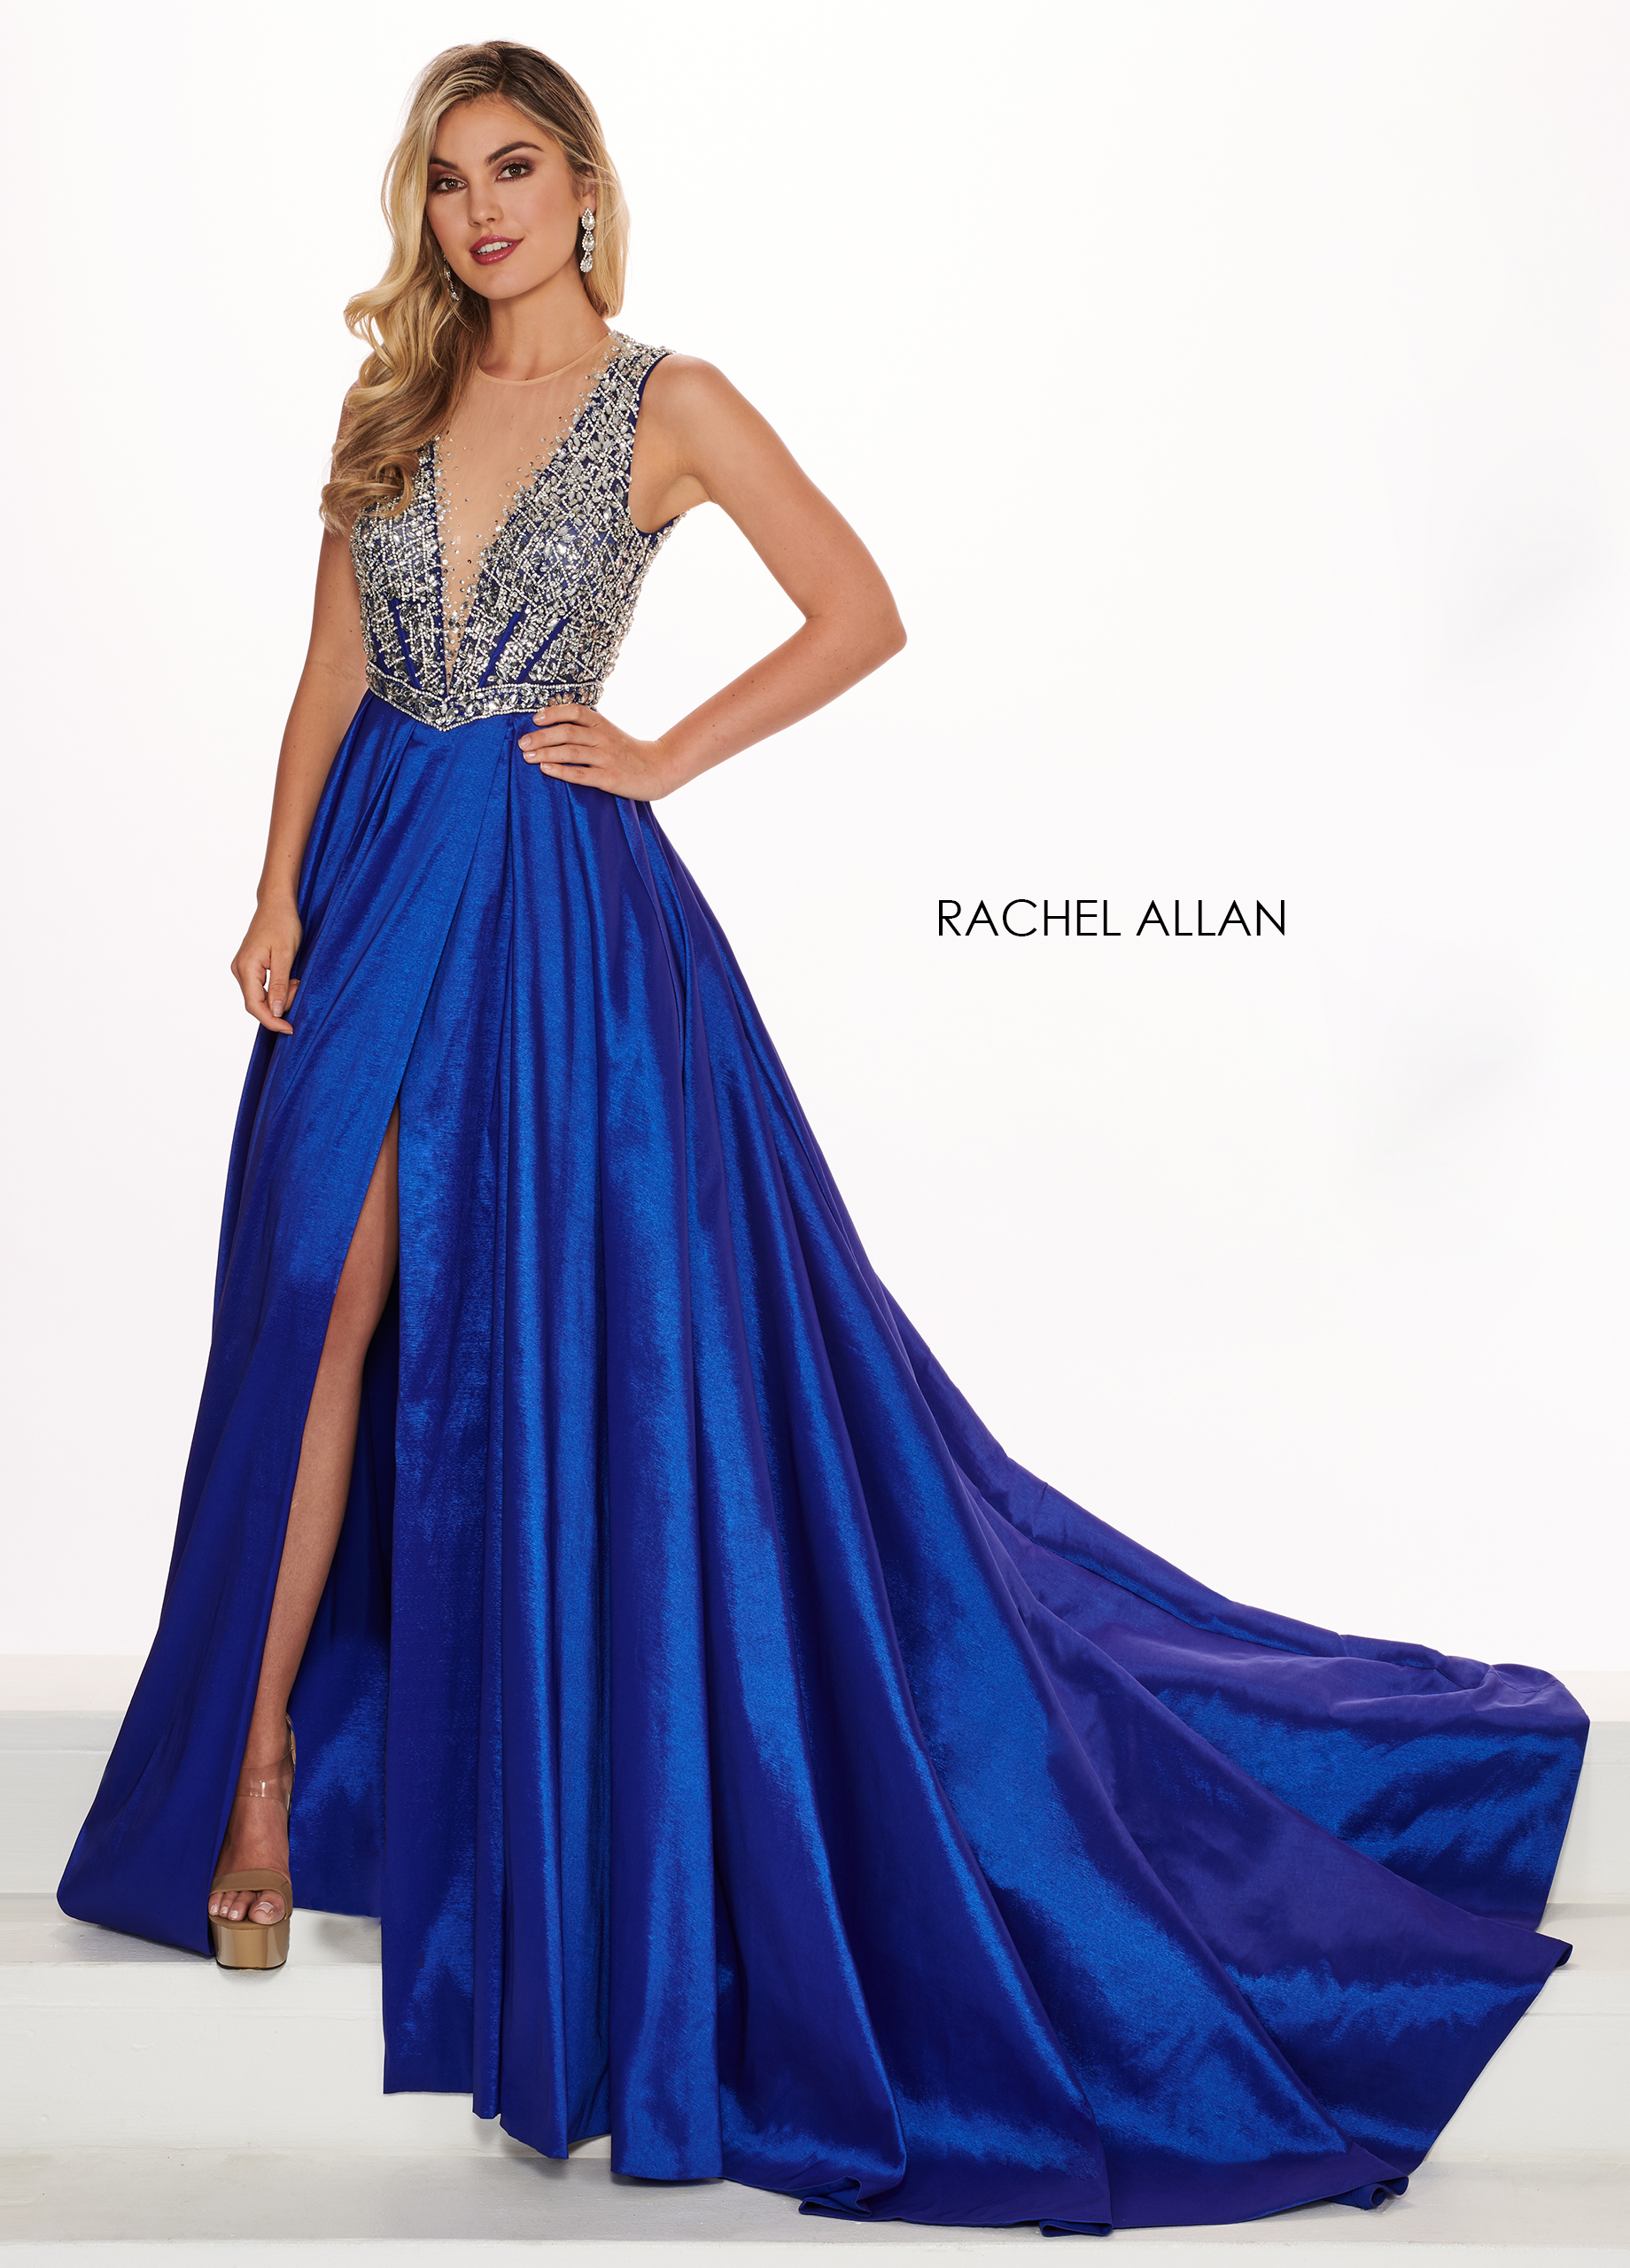 V-Neck A-Line Pageant Dresses in Blue Color